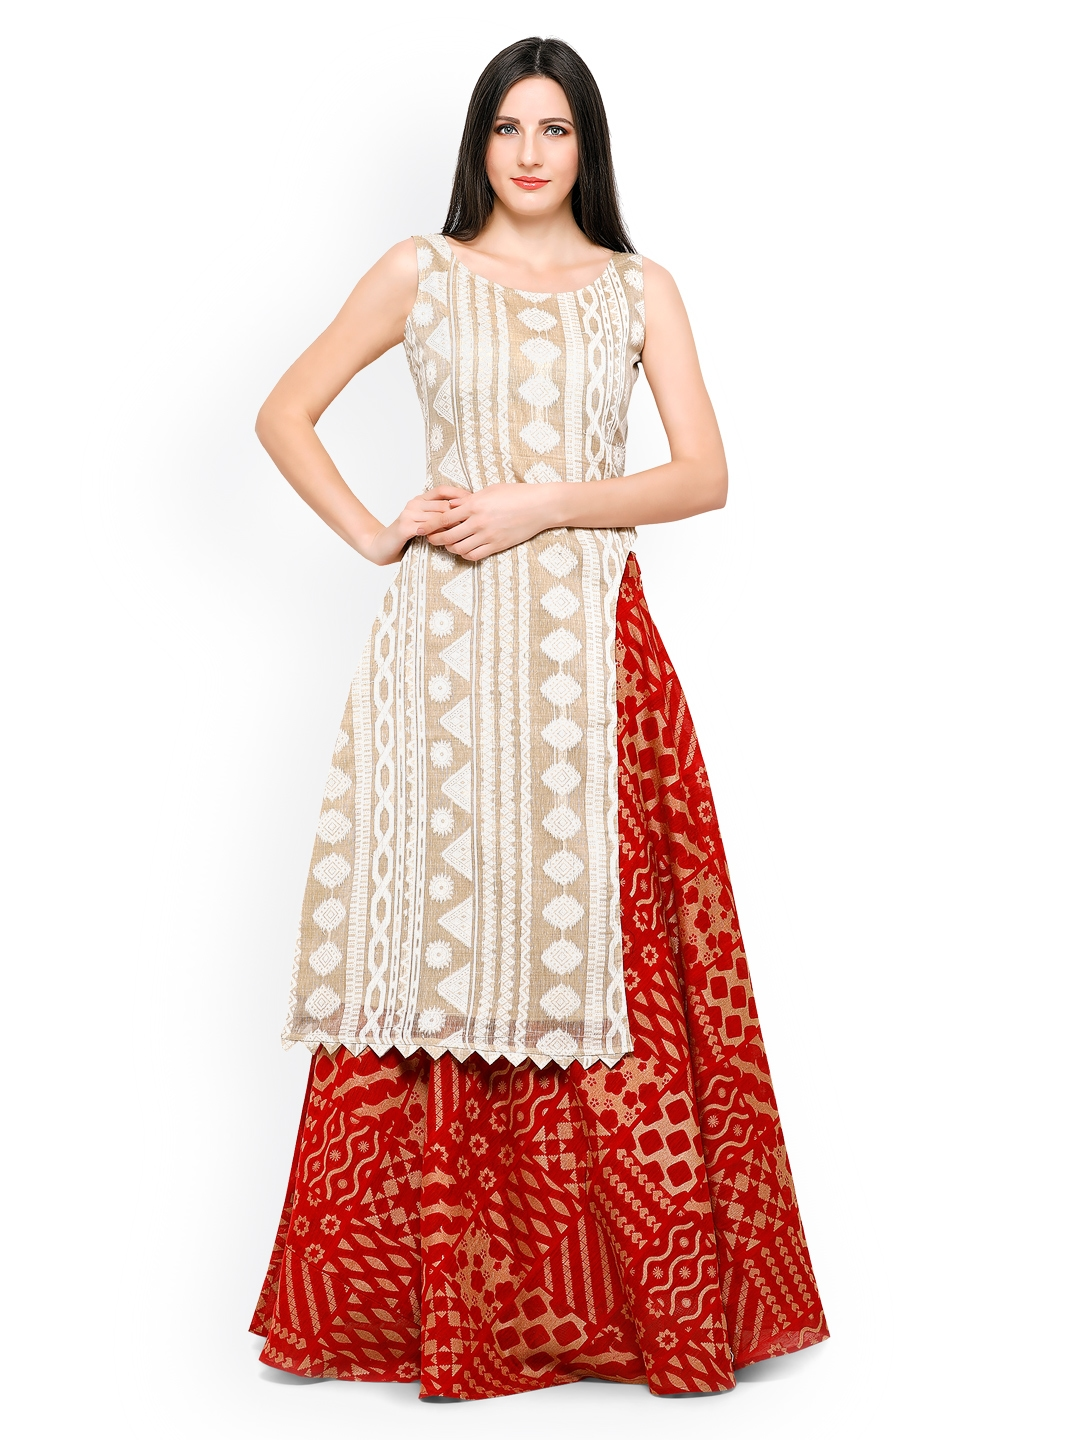 cec4f4aa955 Buy Inddus Beige   Red Banarasi Cotton Semi Stitched Lehenga Choli - Lehenga  Choli for Women 1879626